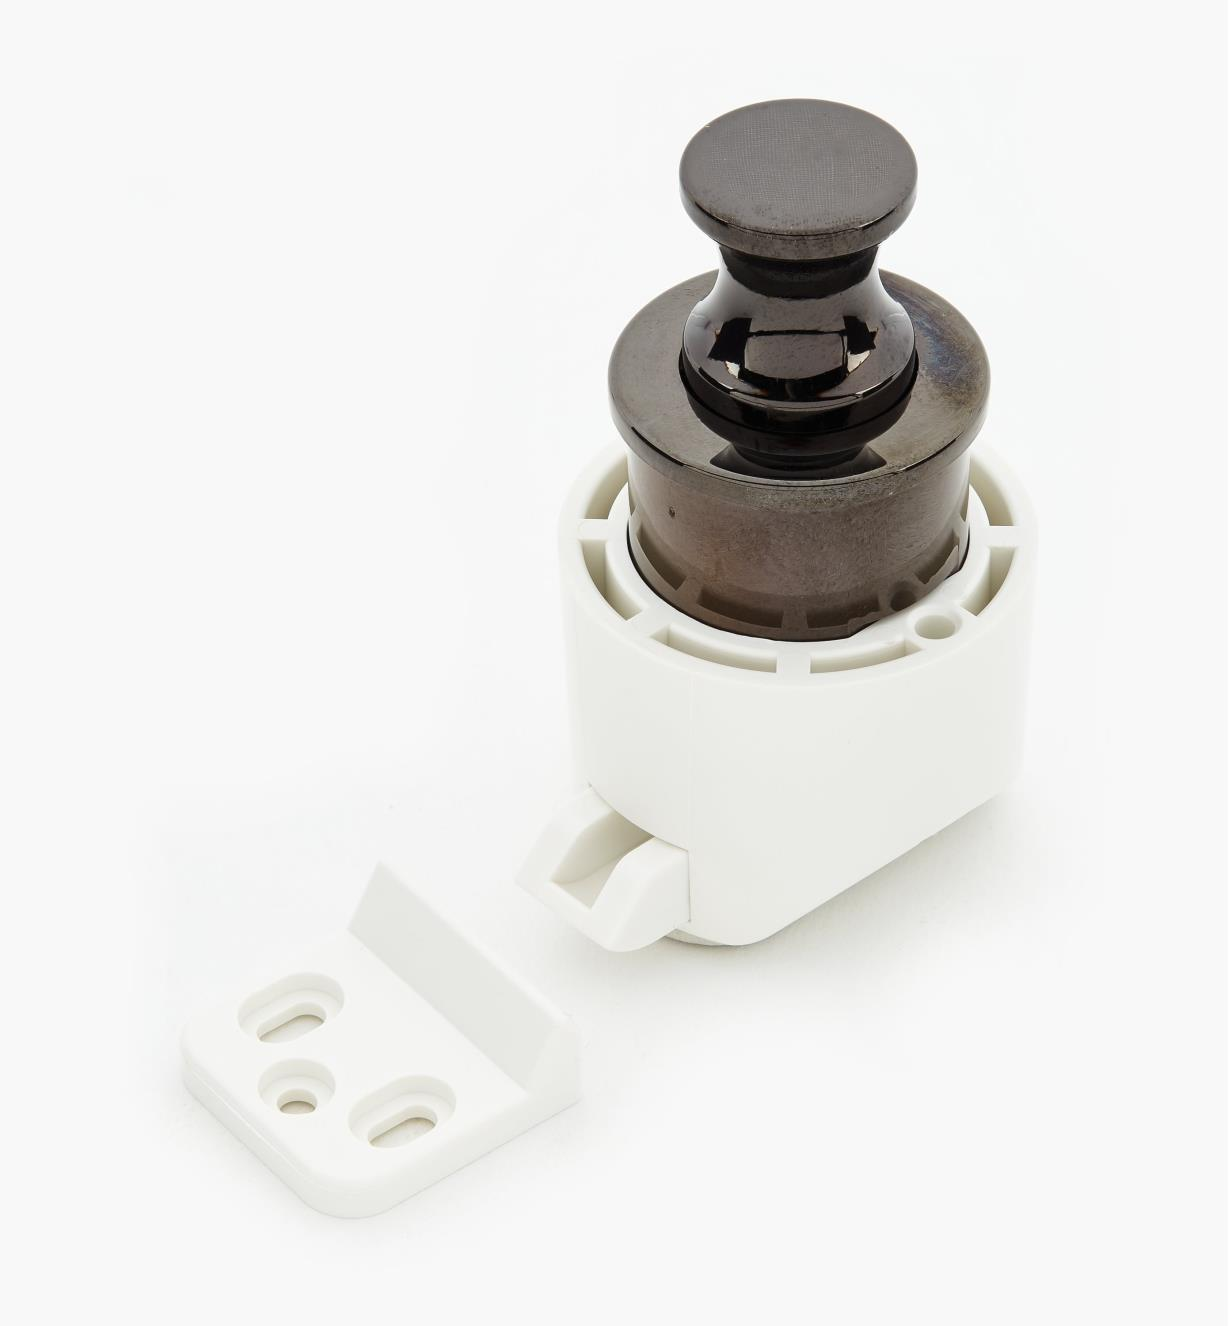 00S3113 - Black Nickel Knob/White Latch